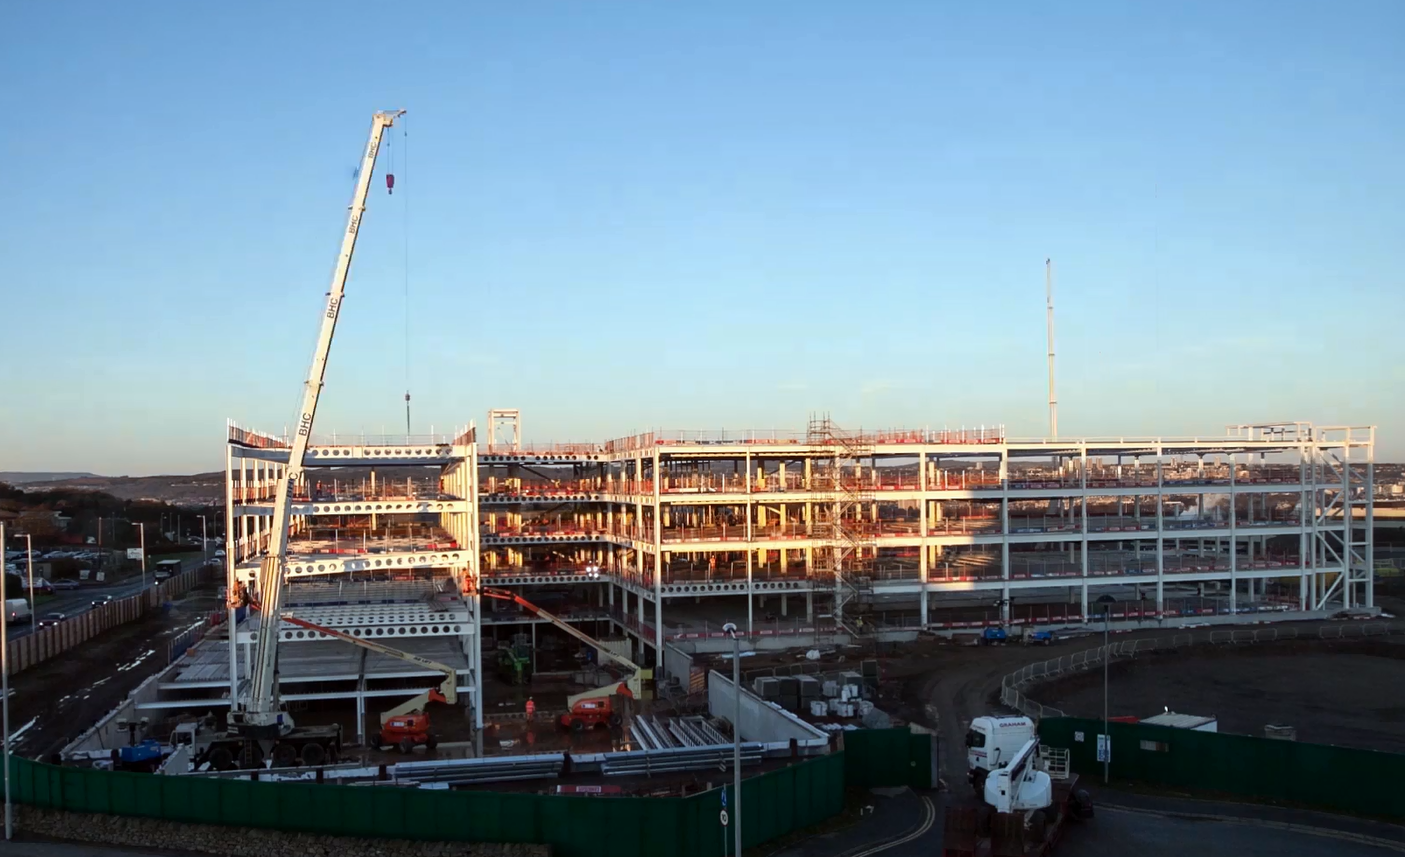 Timelapse of the new Sir Ian Wood building